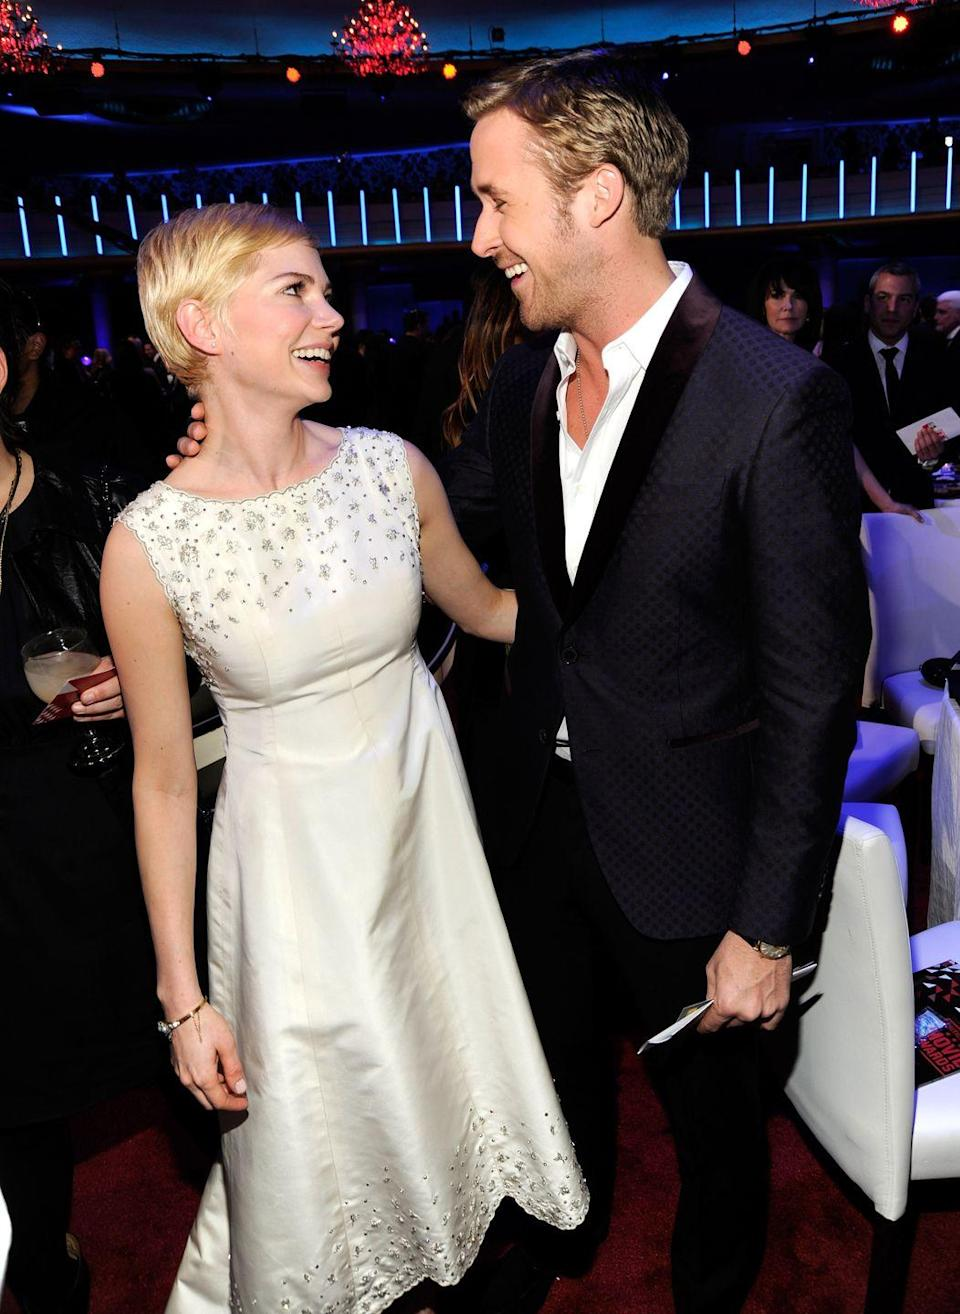 """<p>Williams and Gosling lived together <a href=""""http://hollywoodlife.com/2010/12/14/michelle-williams-ryan-gosling-blue-valentine-living-together/"""" rel=""""nofollow noopener"""" target=""""_blank"""" data-ylk=""""slk:while filming the movie Blue Valentine"""" class=""""link rapid-noclick-resp"""">while filming the movie <em>Blue Valentine</em></a>—per the director's request. The two were only supposed to live together for a week, but they really wanted to get into character and ended up staying roommates for a month, living off a nurse's and painter's salary.</p>"""